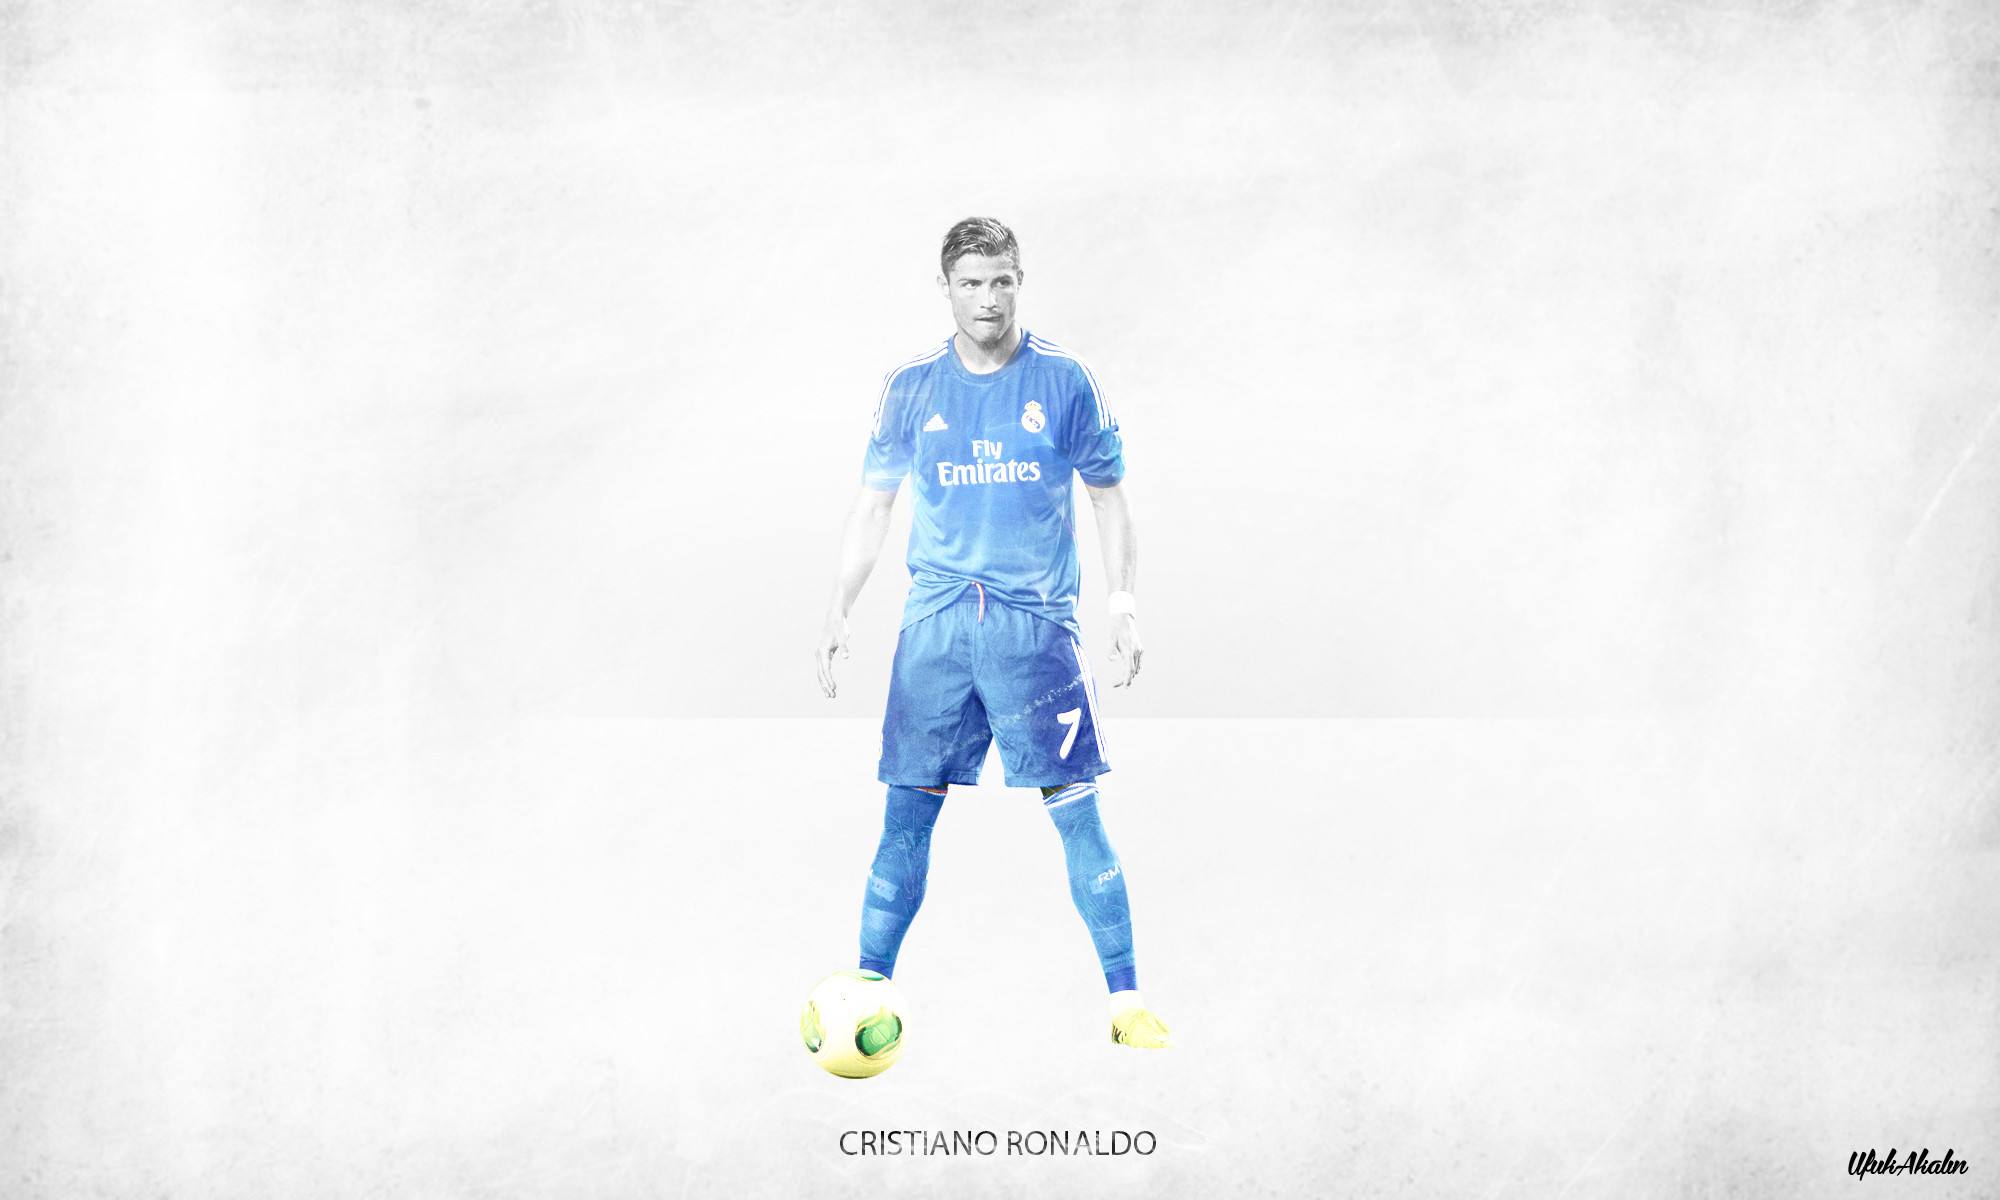 2000x1200 Cristiano Ronaldo - Wallpaper by ufuuk7 Cristiano Ronaldo - Wallpaper by  ufuuk7